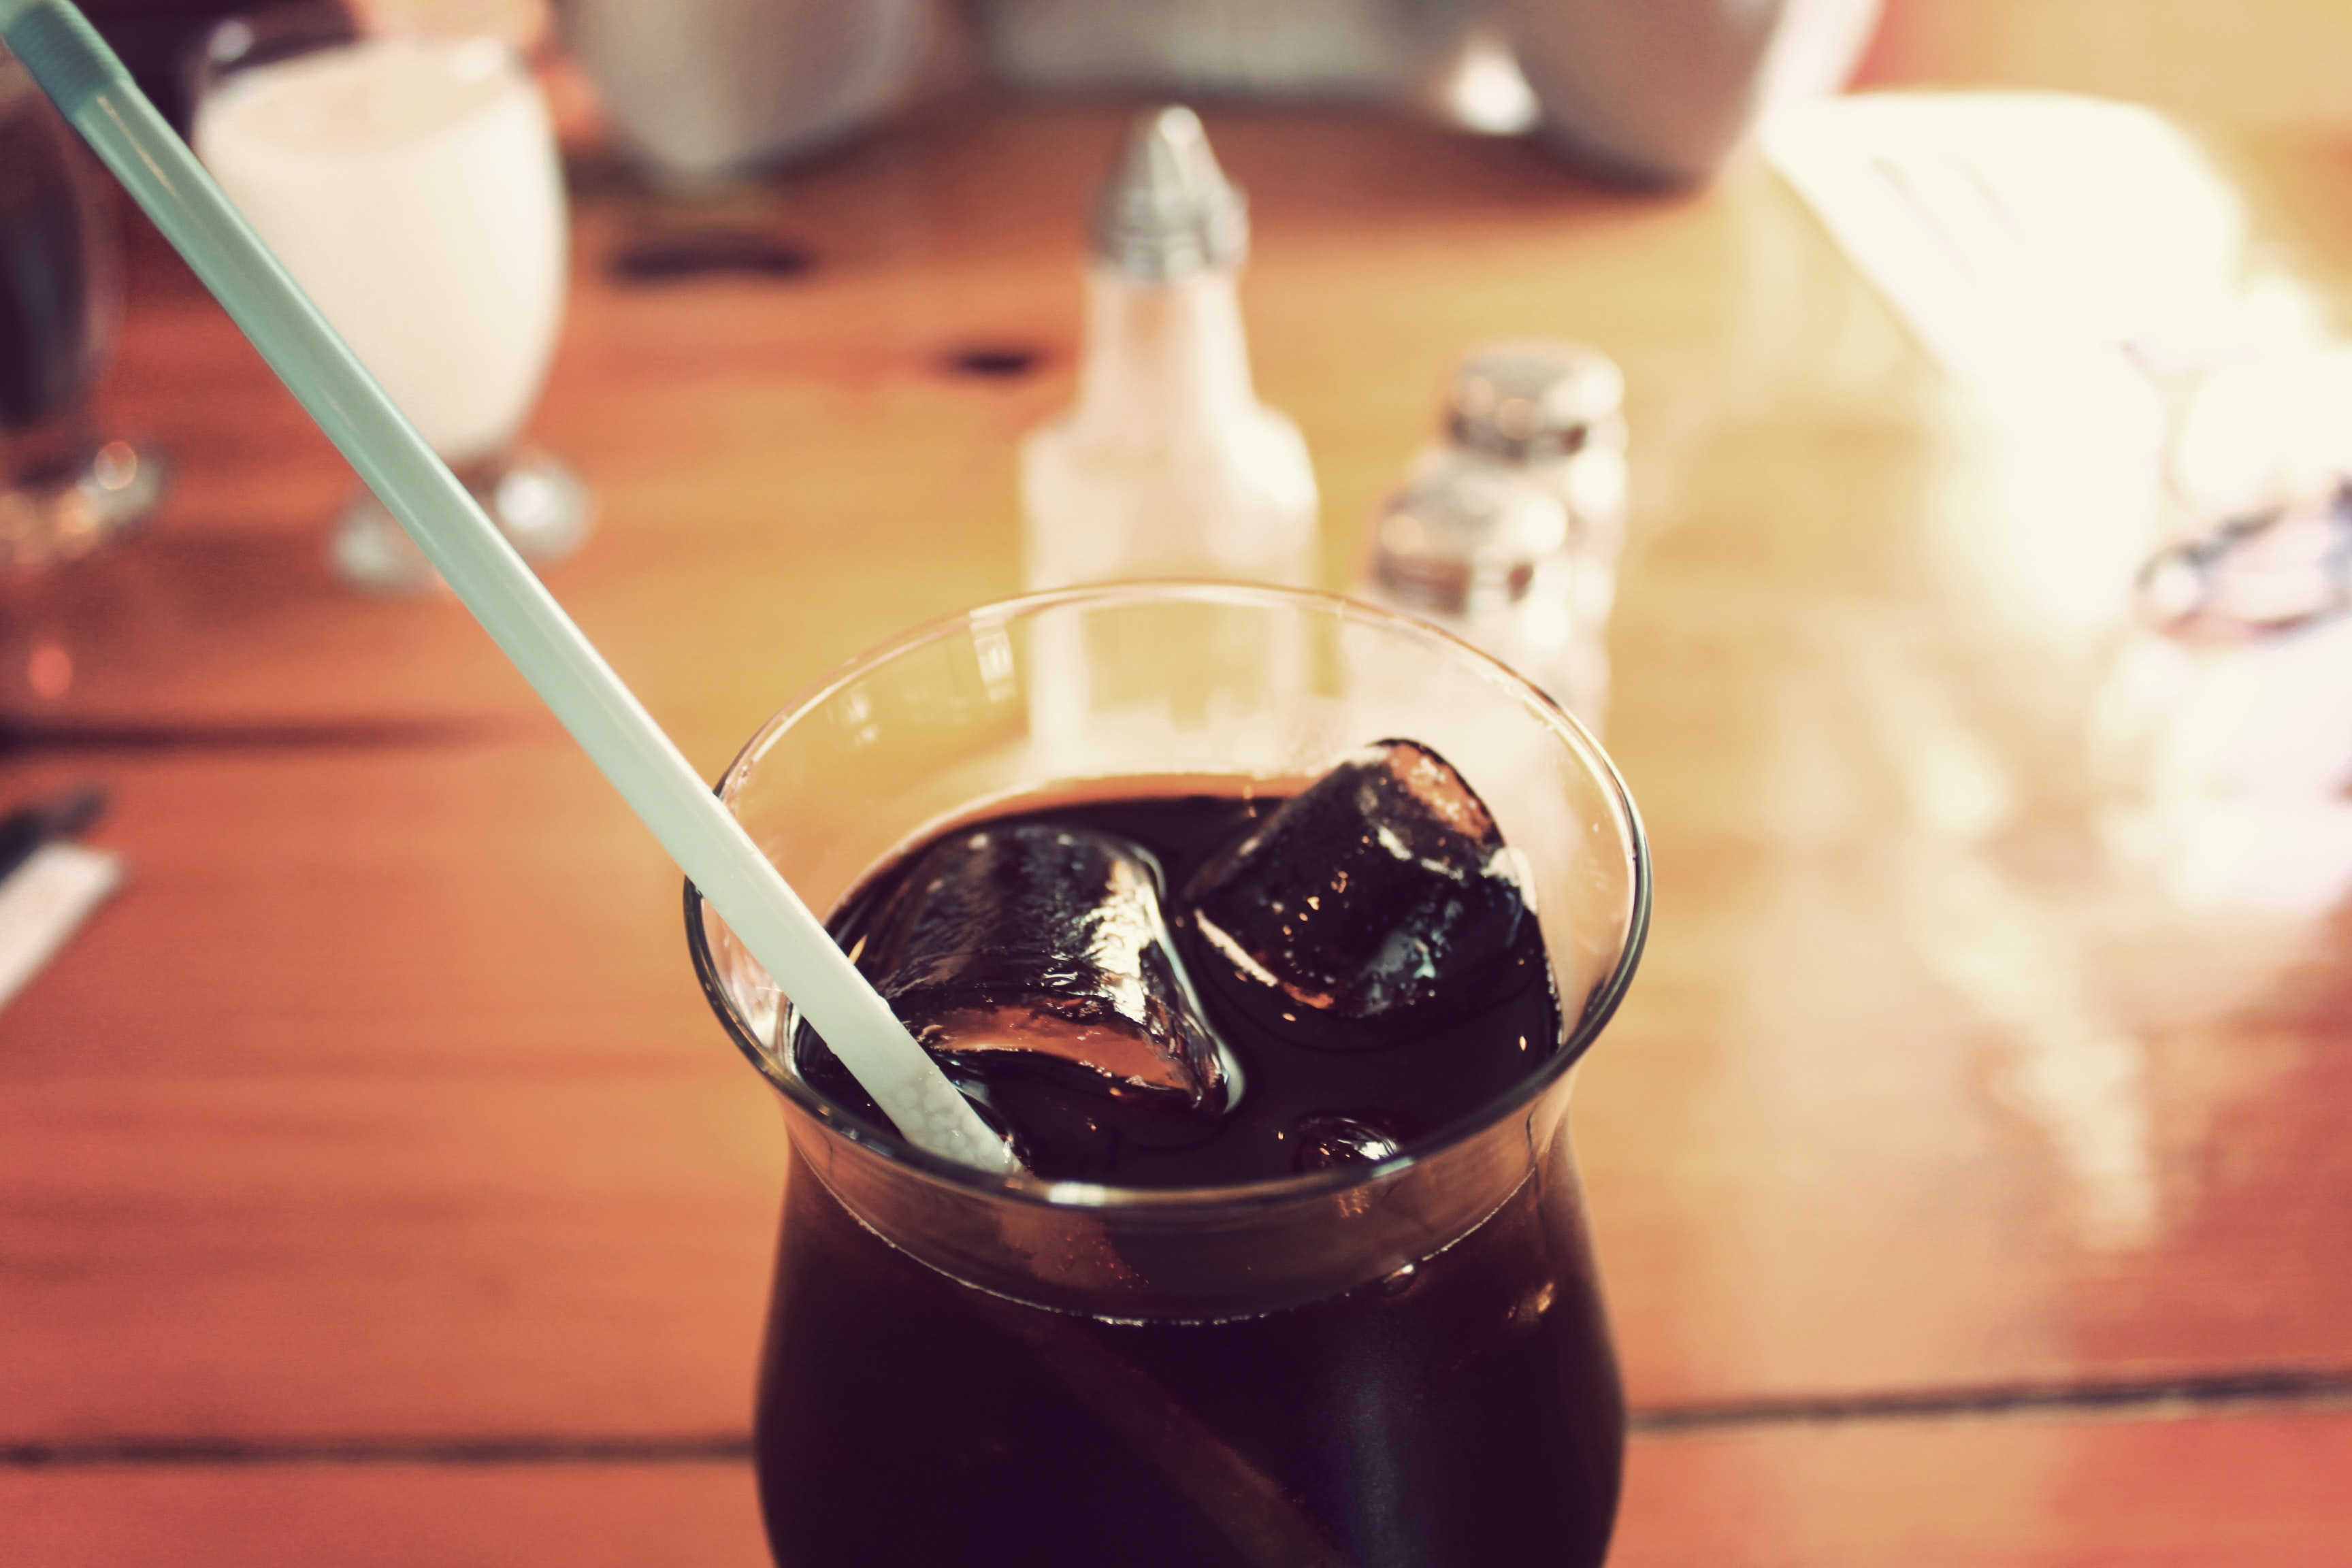 Refreshing glass of soda with ice and a straw at a diner